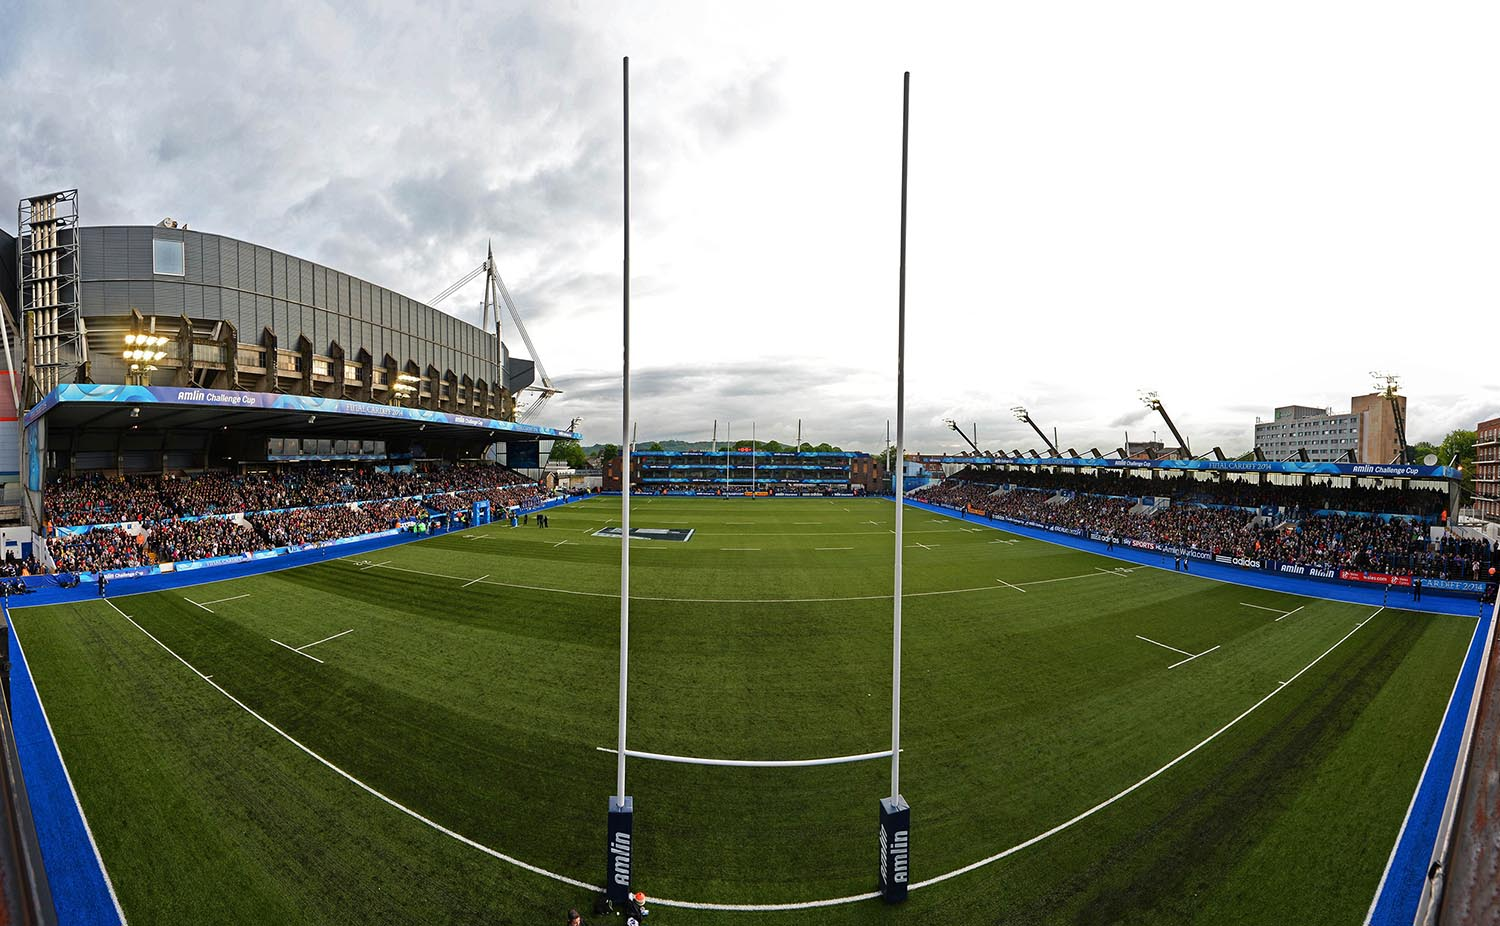 A general view of Cardiff Arms Park